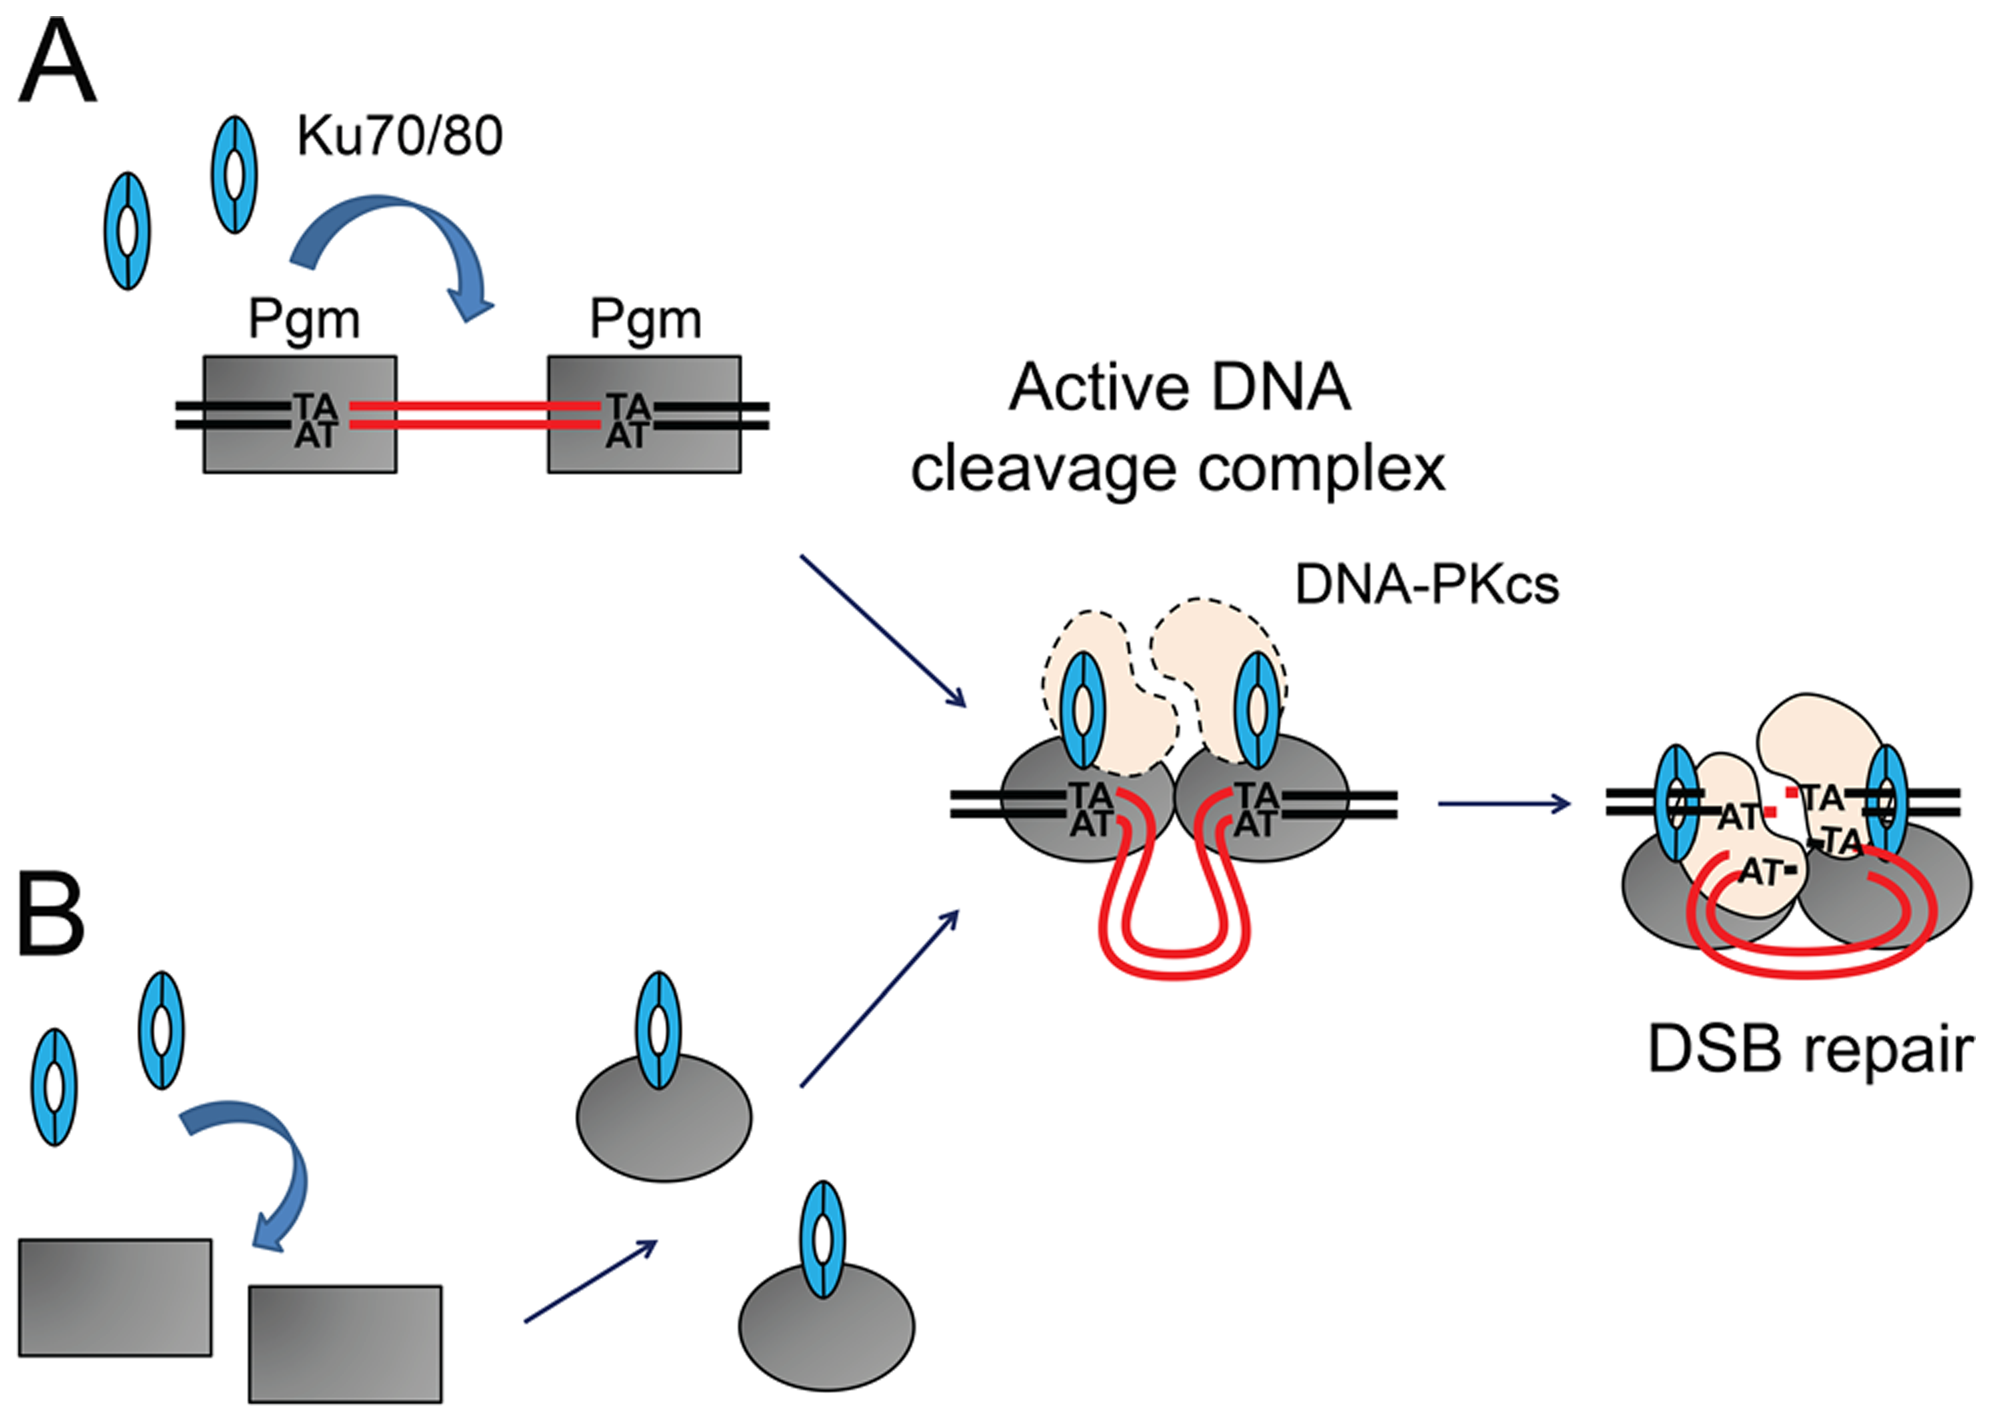 Models for the assembly of an active DNA cleavage complex.